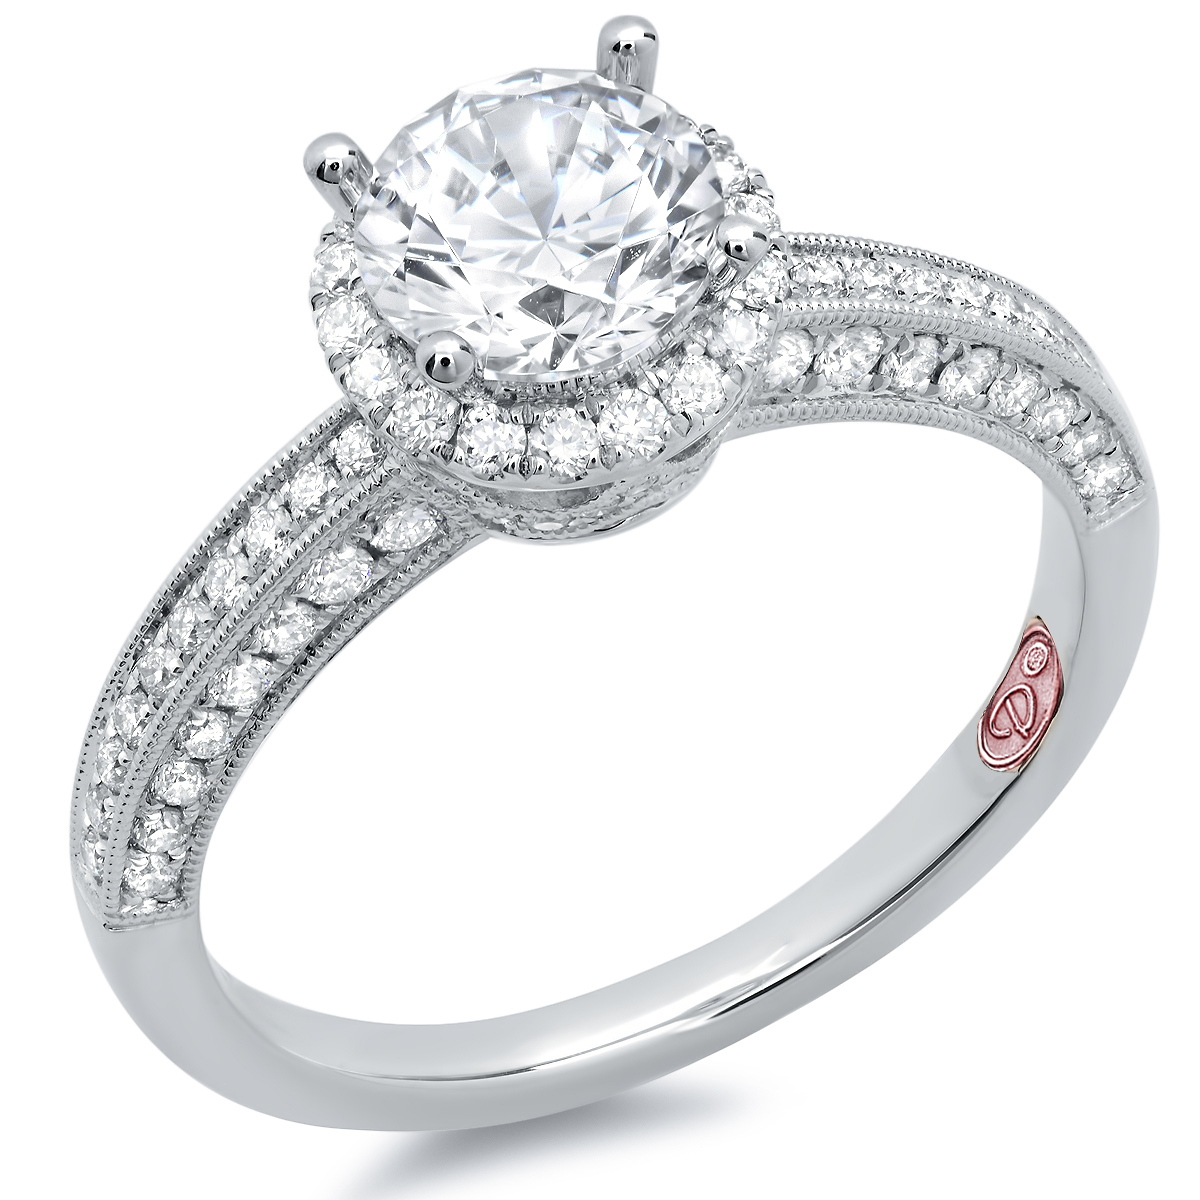 Designer Engagement Rings In Winter Park